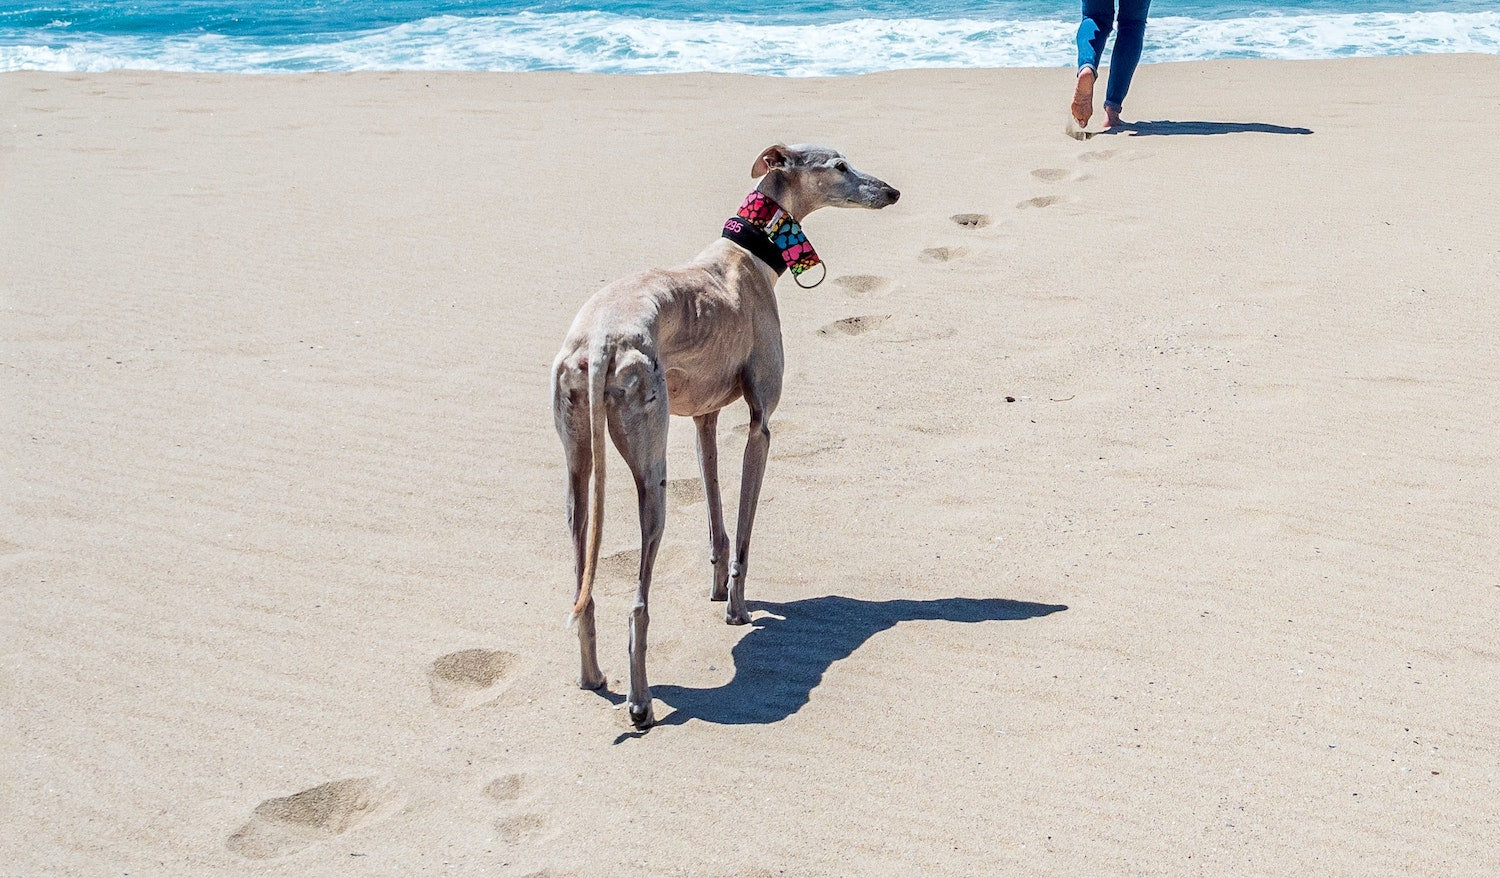 Dog walking on the beach in Summer